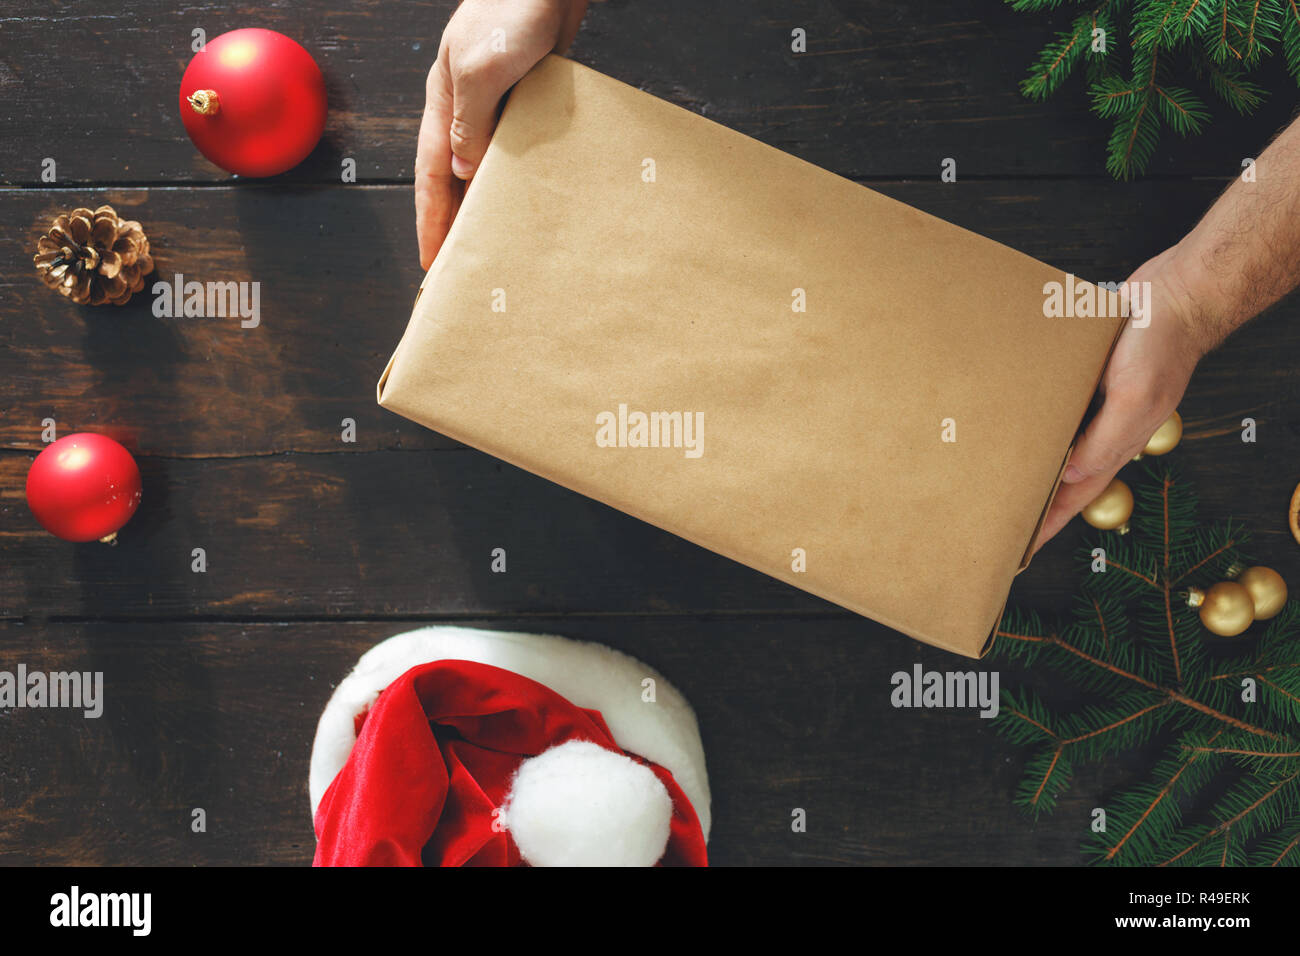 a7228b76e2 Male hands holding big box christmas present on wooden table top view.  Rustic Christmas background. Wrapping presents background